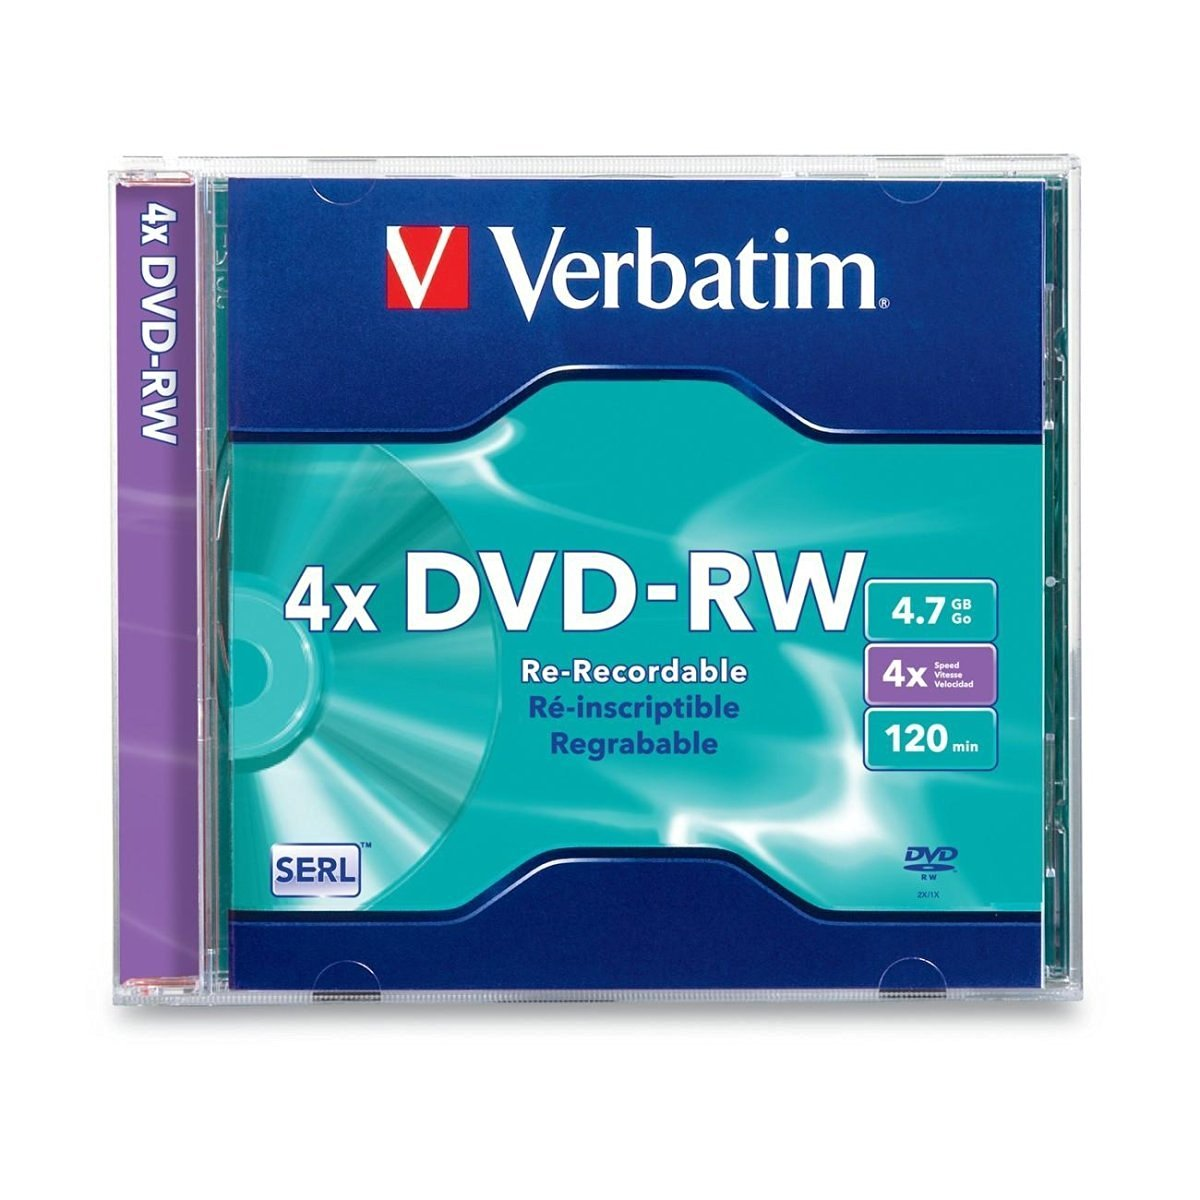 VERBATIM 94836 DVD-RW 4x 4.7GB for General use DataLifePlus Branded Surface 1pk Jewel Case